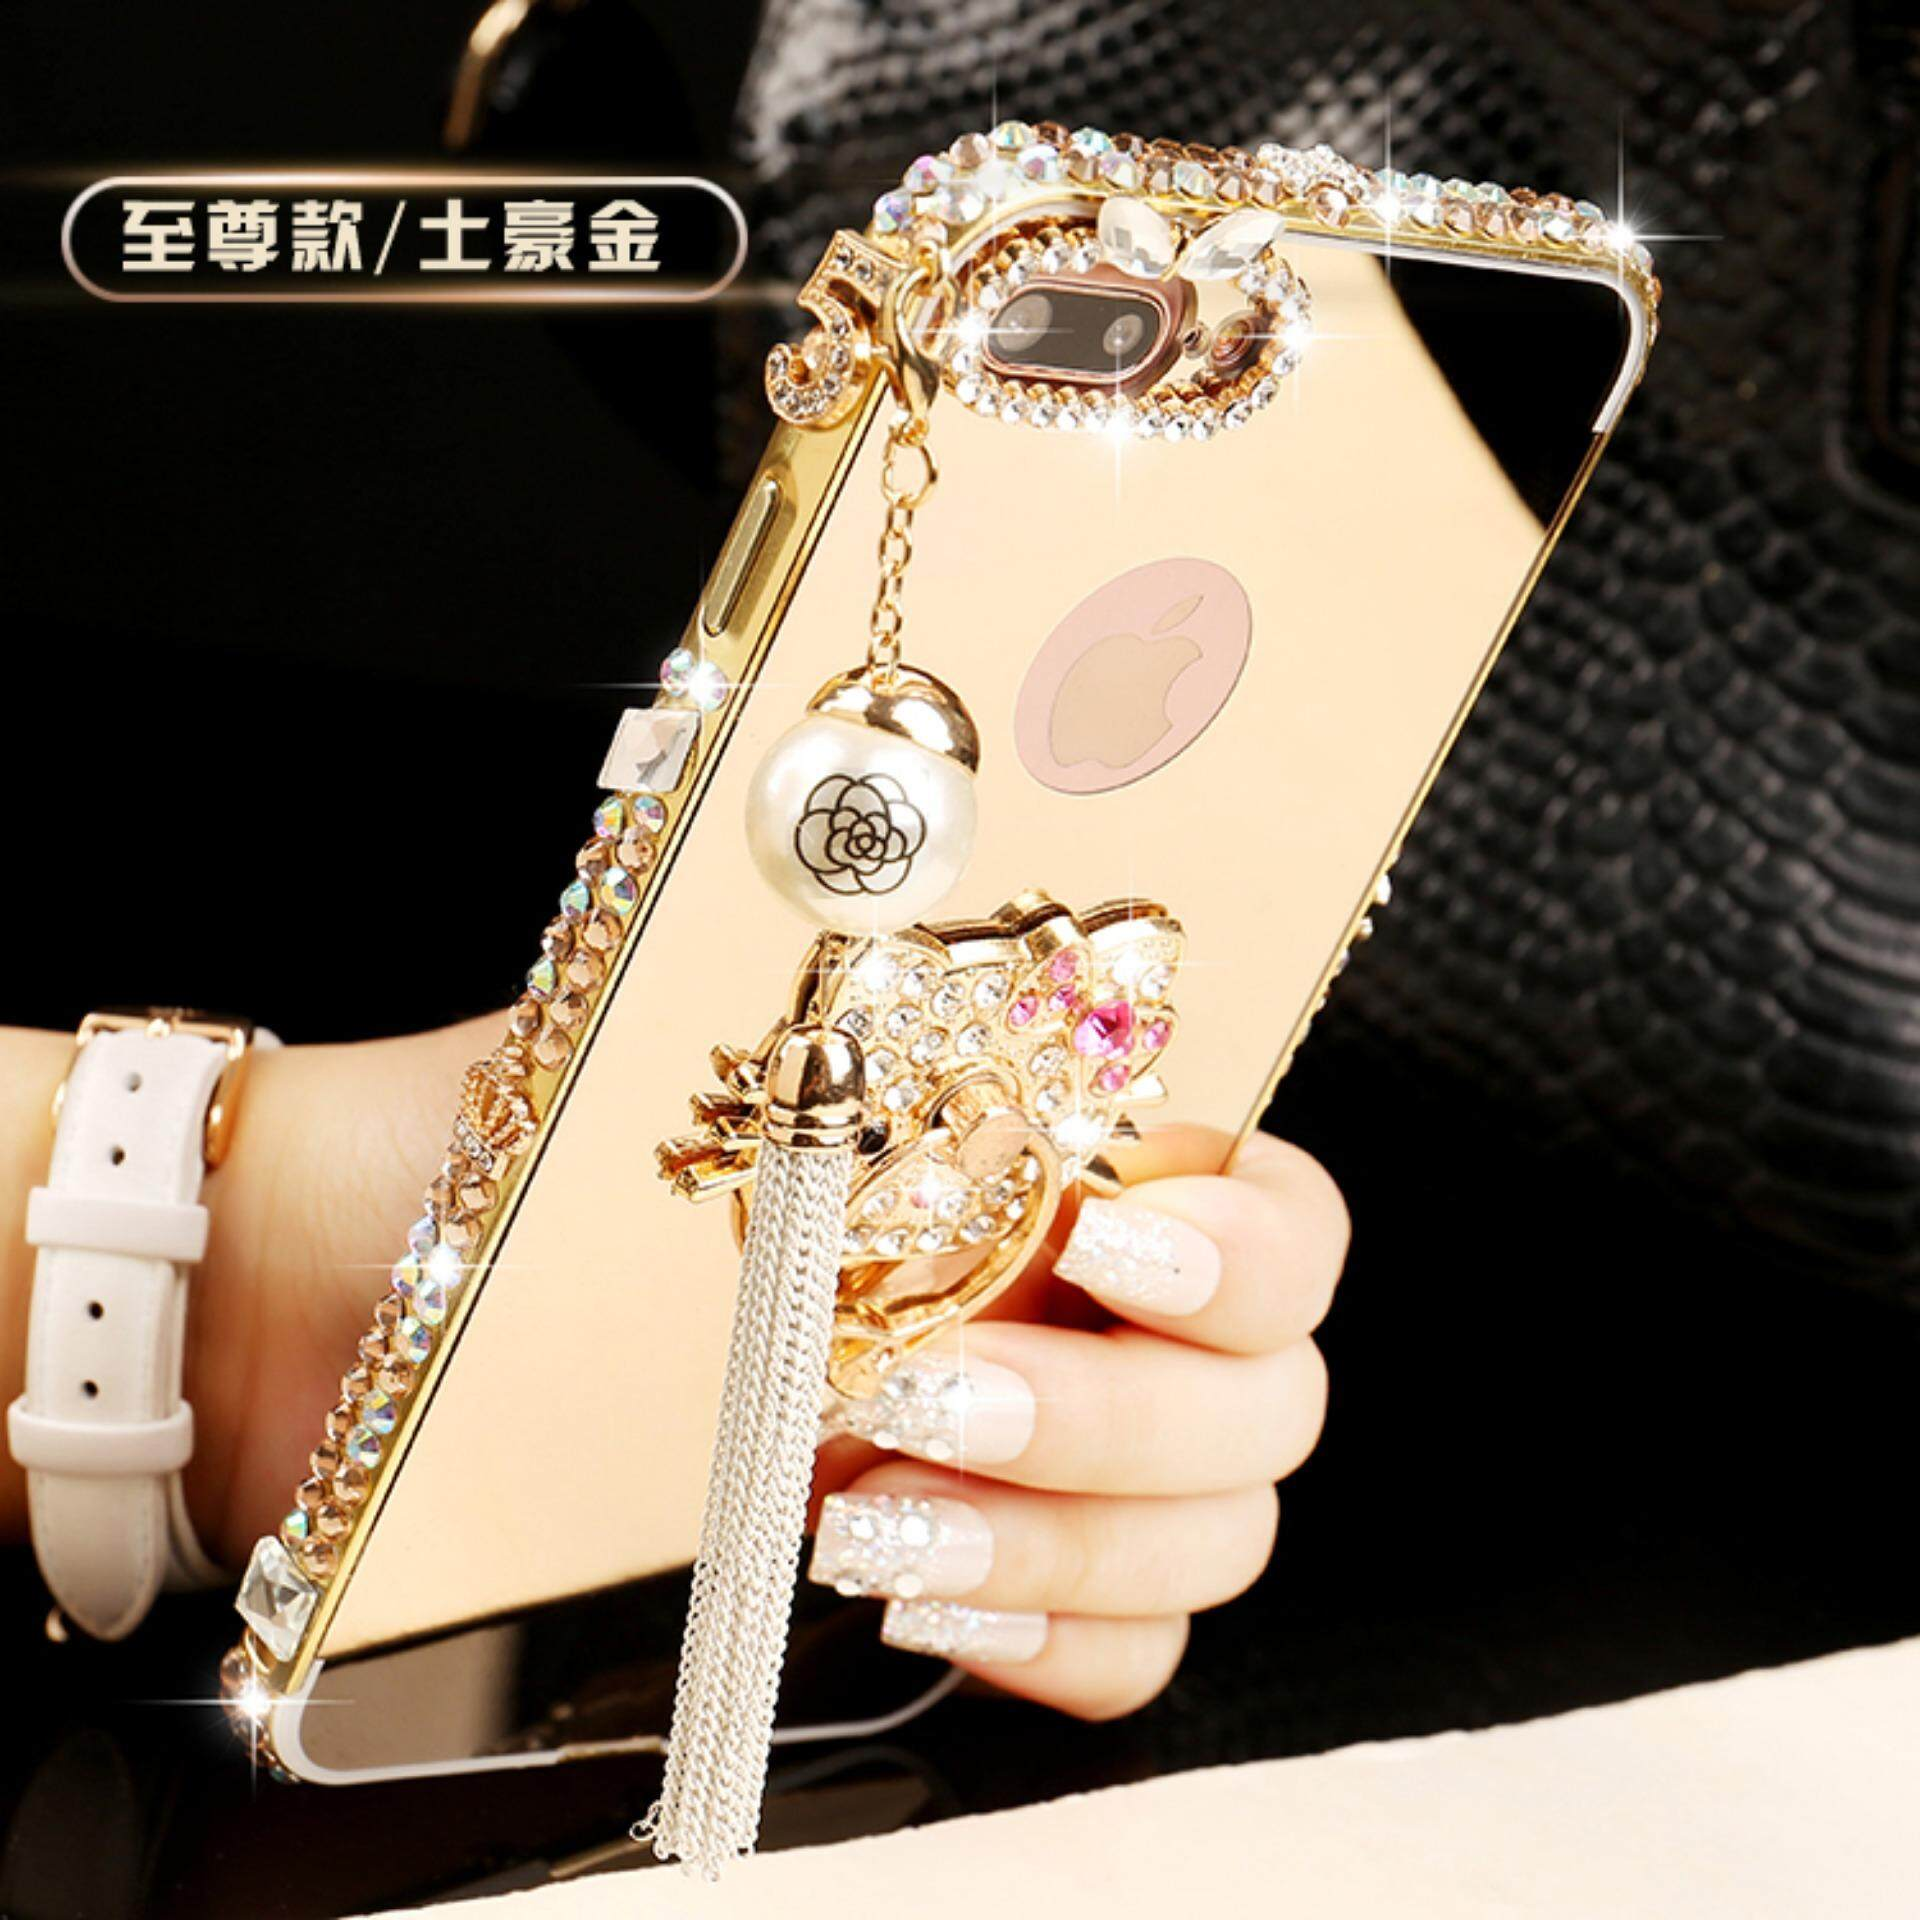 Fitur Softcase Vivo Y71 Luxury Diamond Eiffel Casing Cover Import Transformers Case Standing V5 Biru Metal Frame And Mirror Pc Back For Intl